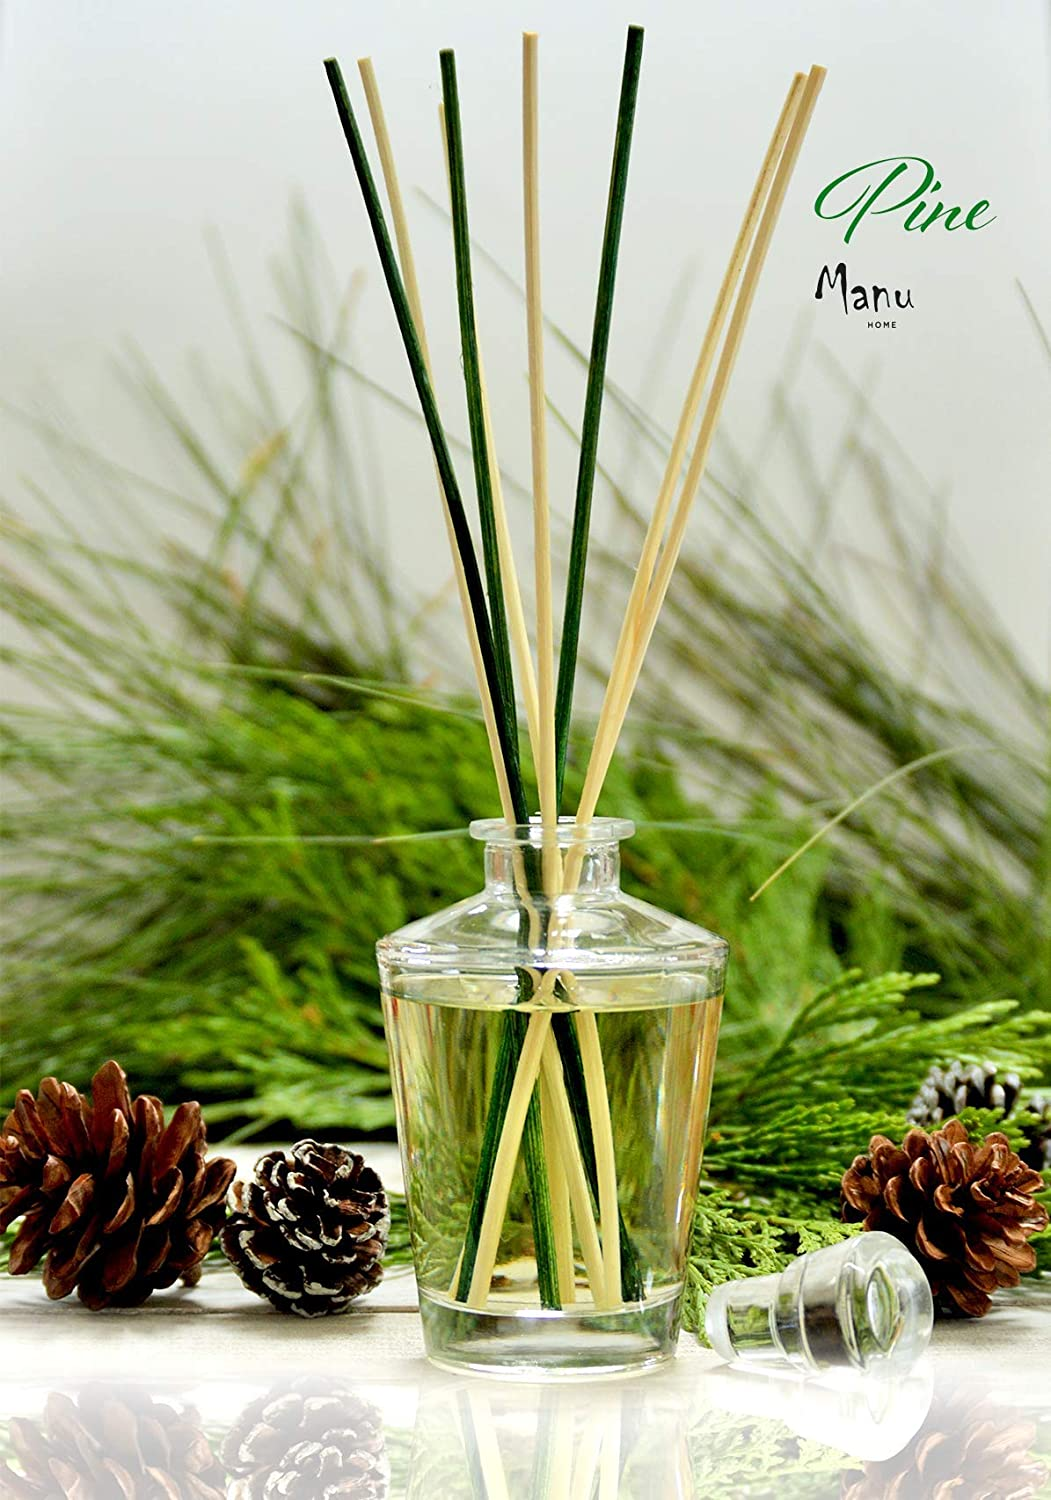 Manu Home Fresh Forest Pine Diffuser ~ The Scent of Pine with Cedar Wood, Patchouli and Thyme. Our Natural Reeds Produce a Light, Delicate Fragrance Drawn from Pure Essential Oils of botanicals~ 4oz